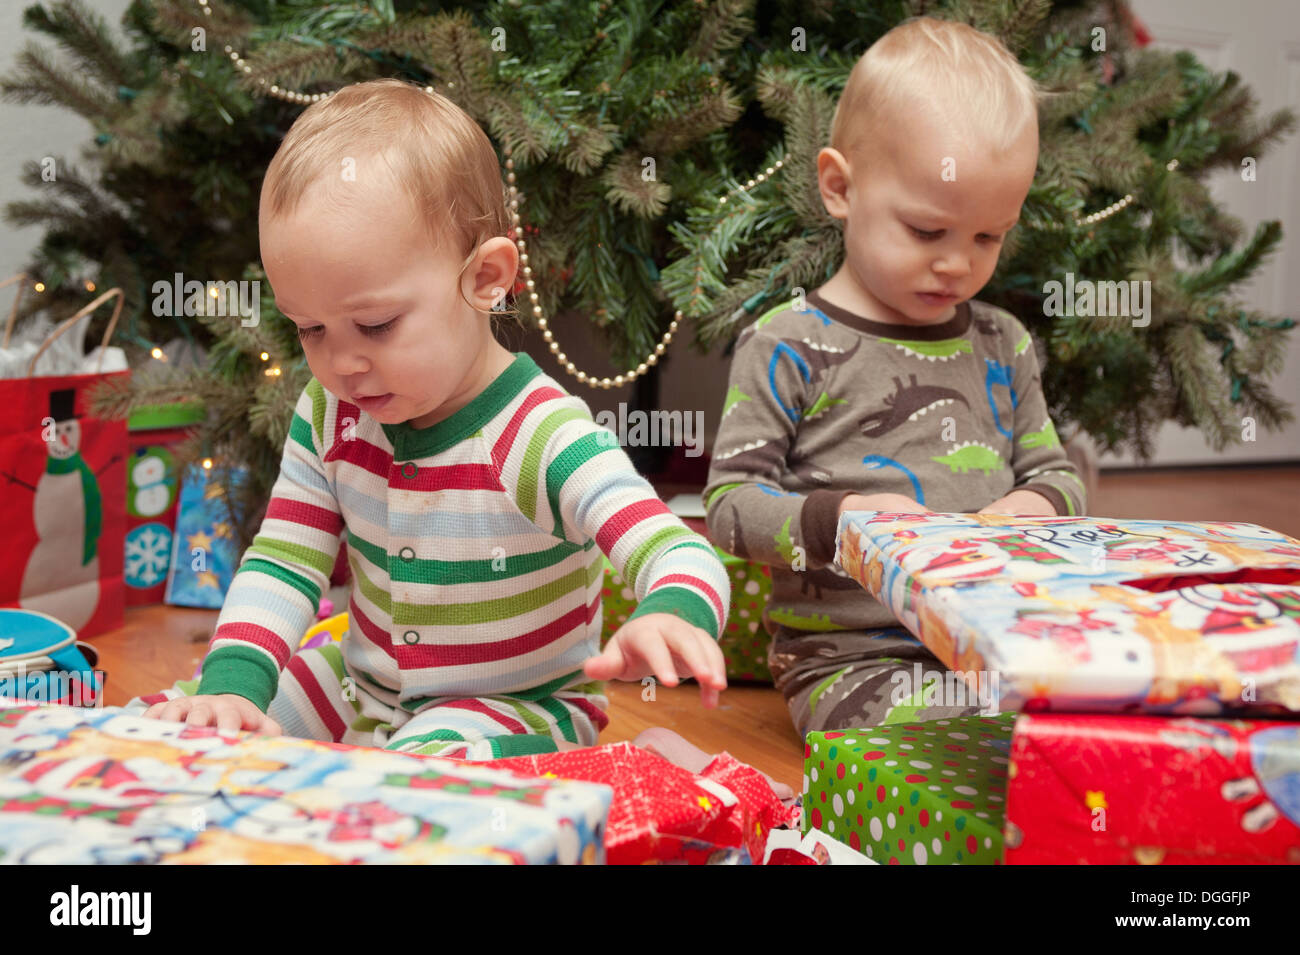 Brother and sister looking at Christmas presents - Stock Image